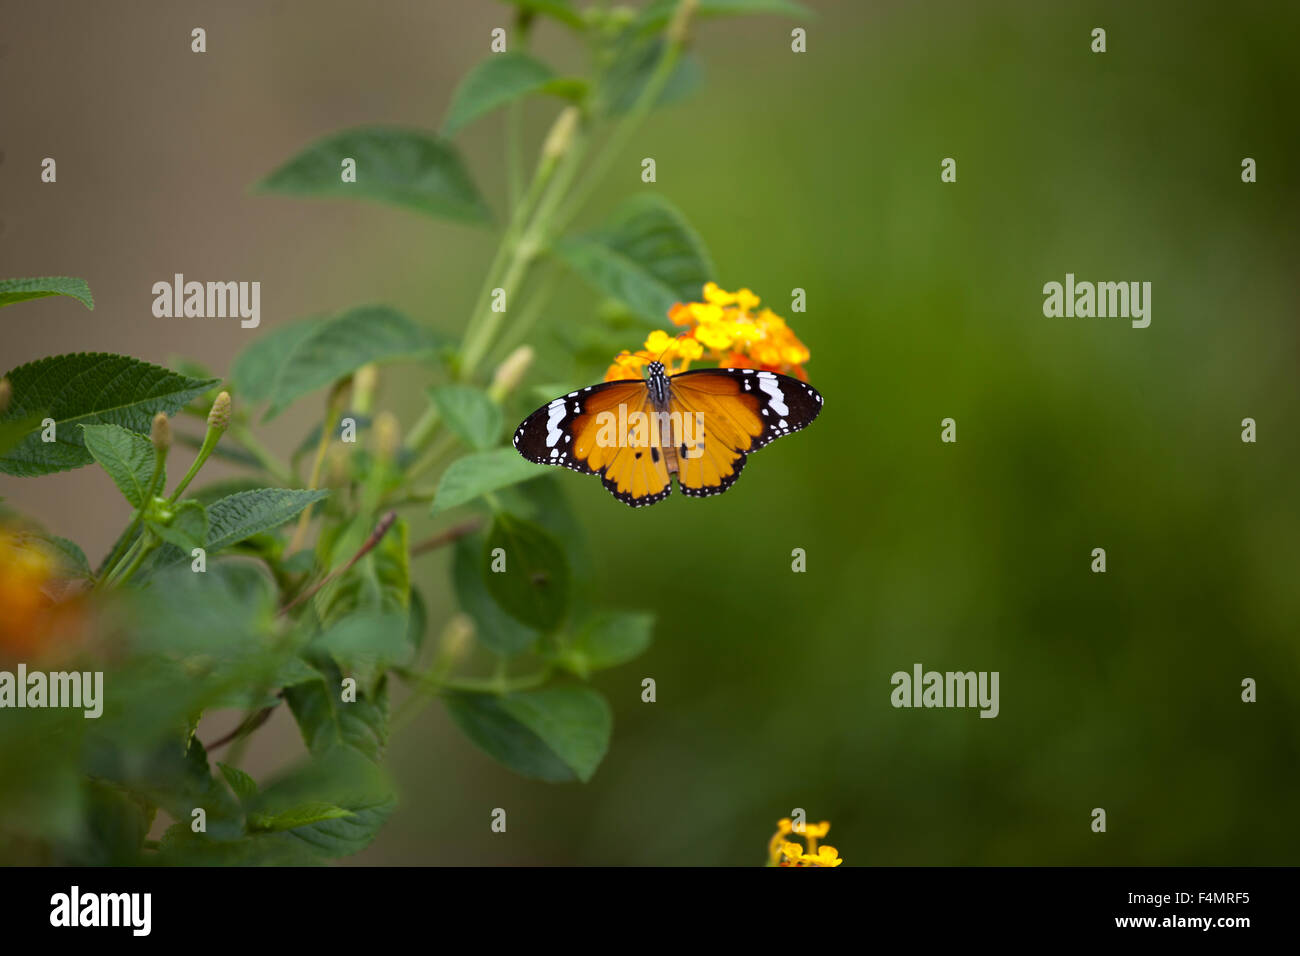 Butterfly in Georgetown, Malaysia Stock Photo